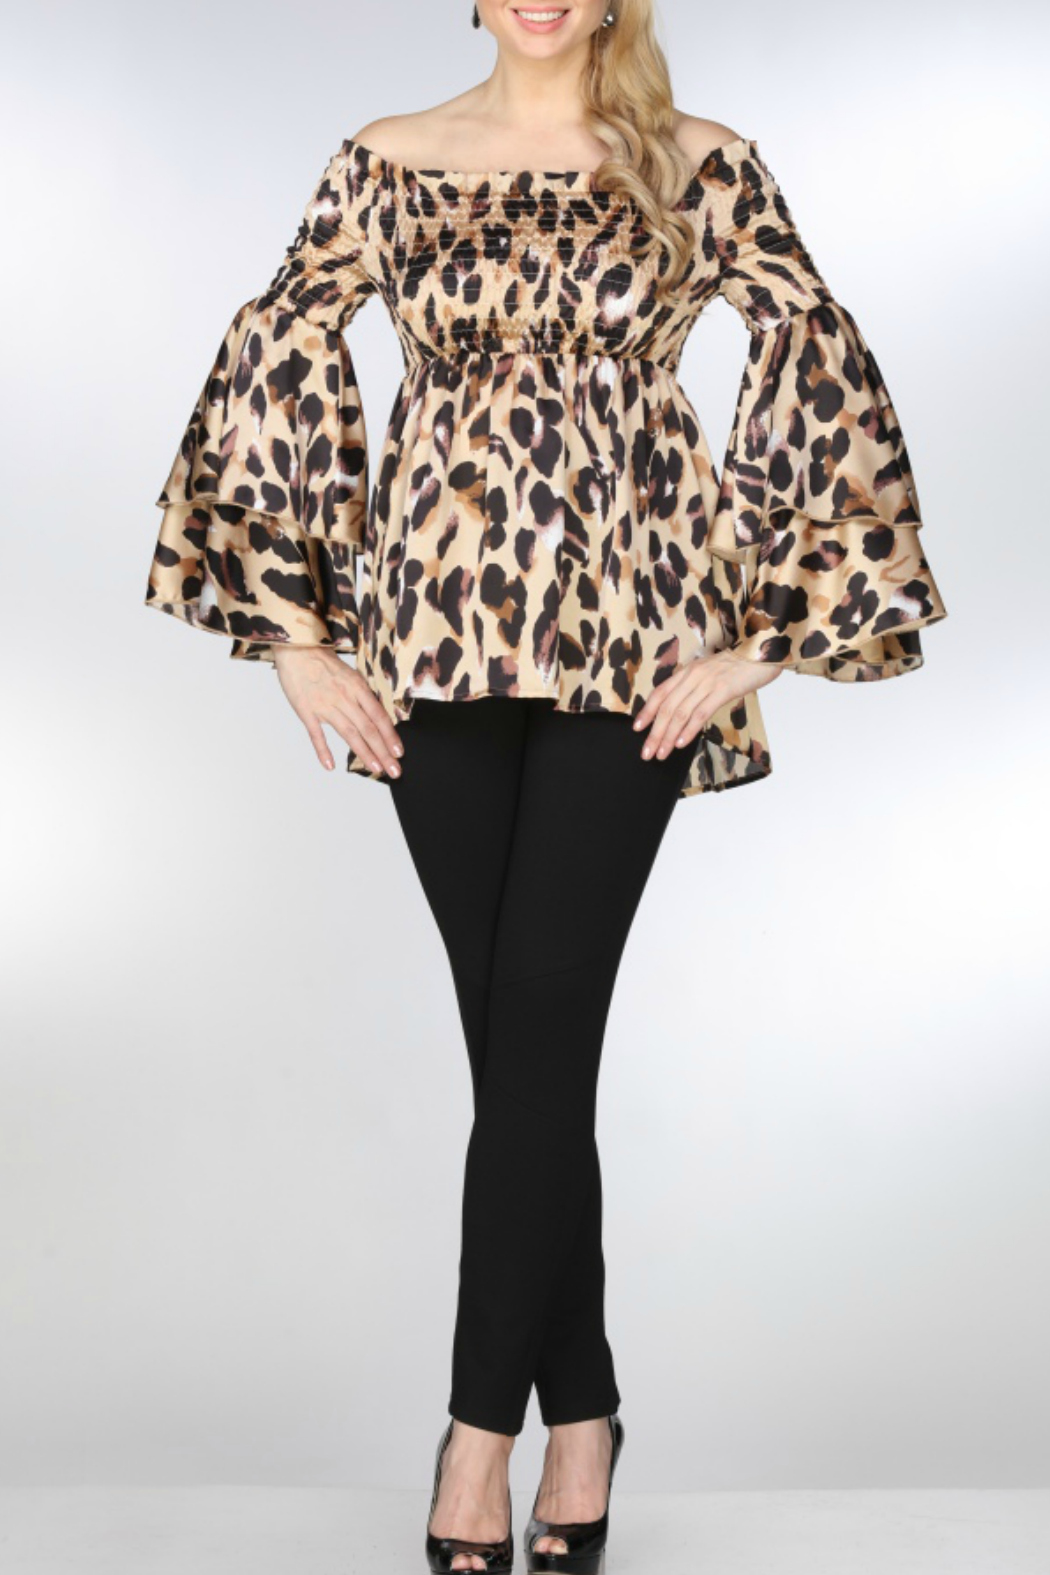 AZI Jeans Lolita Smocked Leopard OTS Top - Main Image